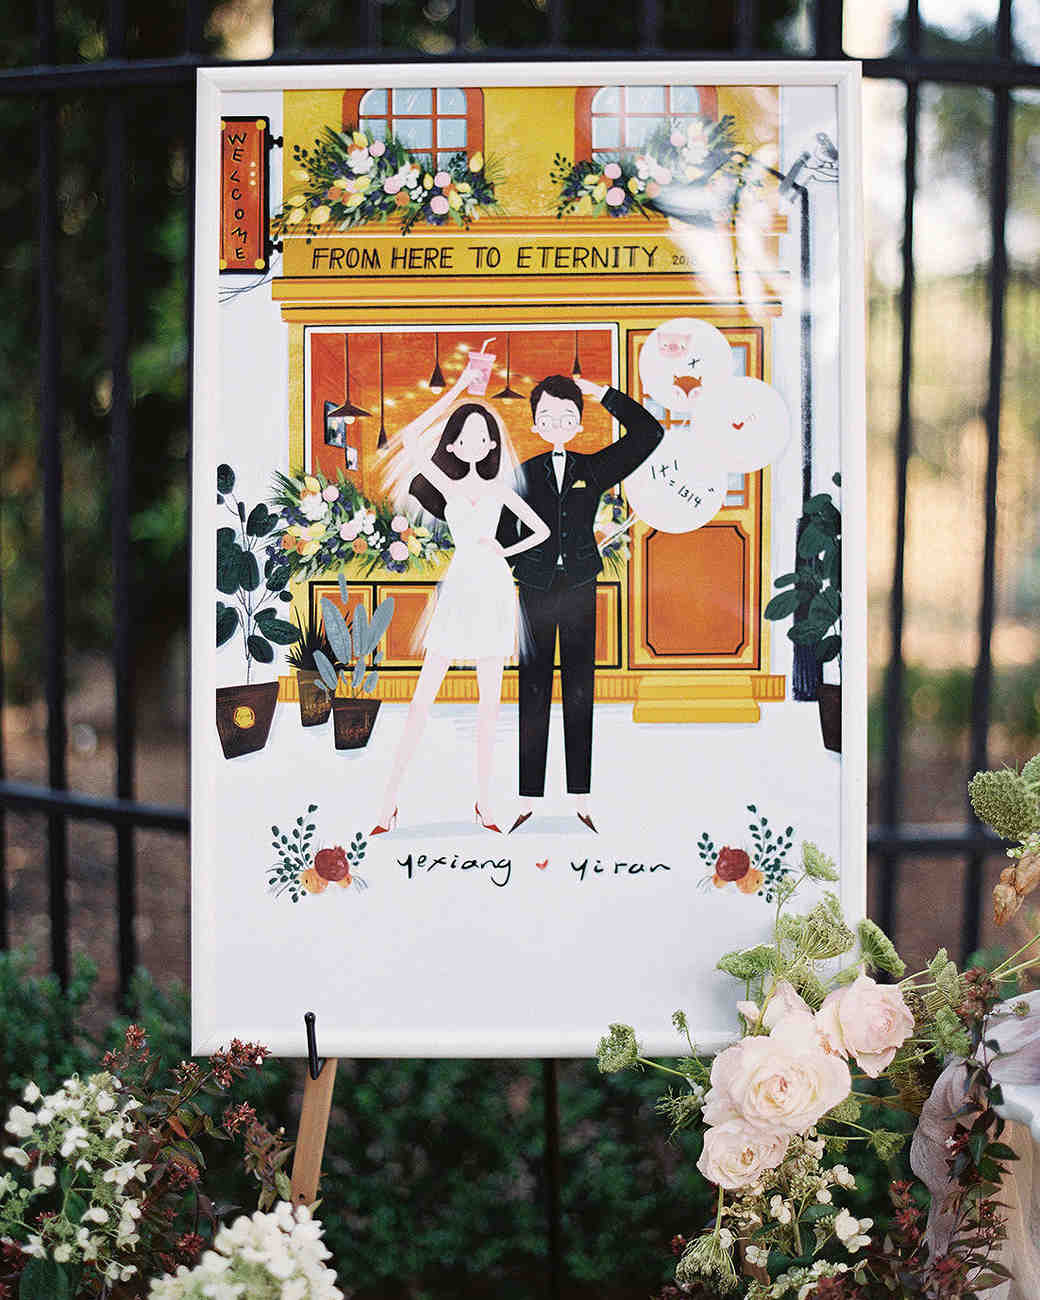 yiran yexiang wedding poster of bride and groom